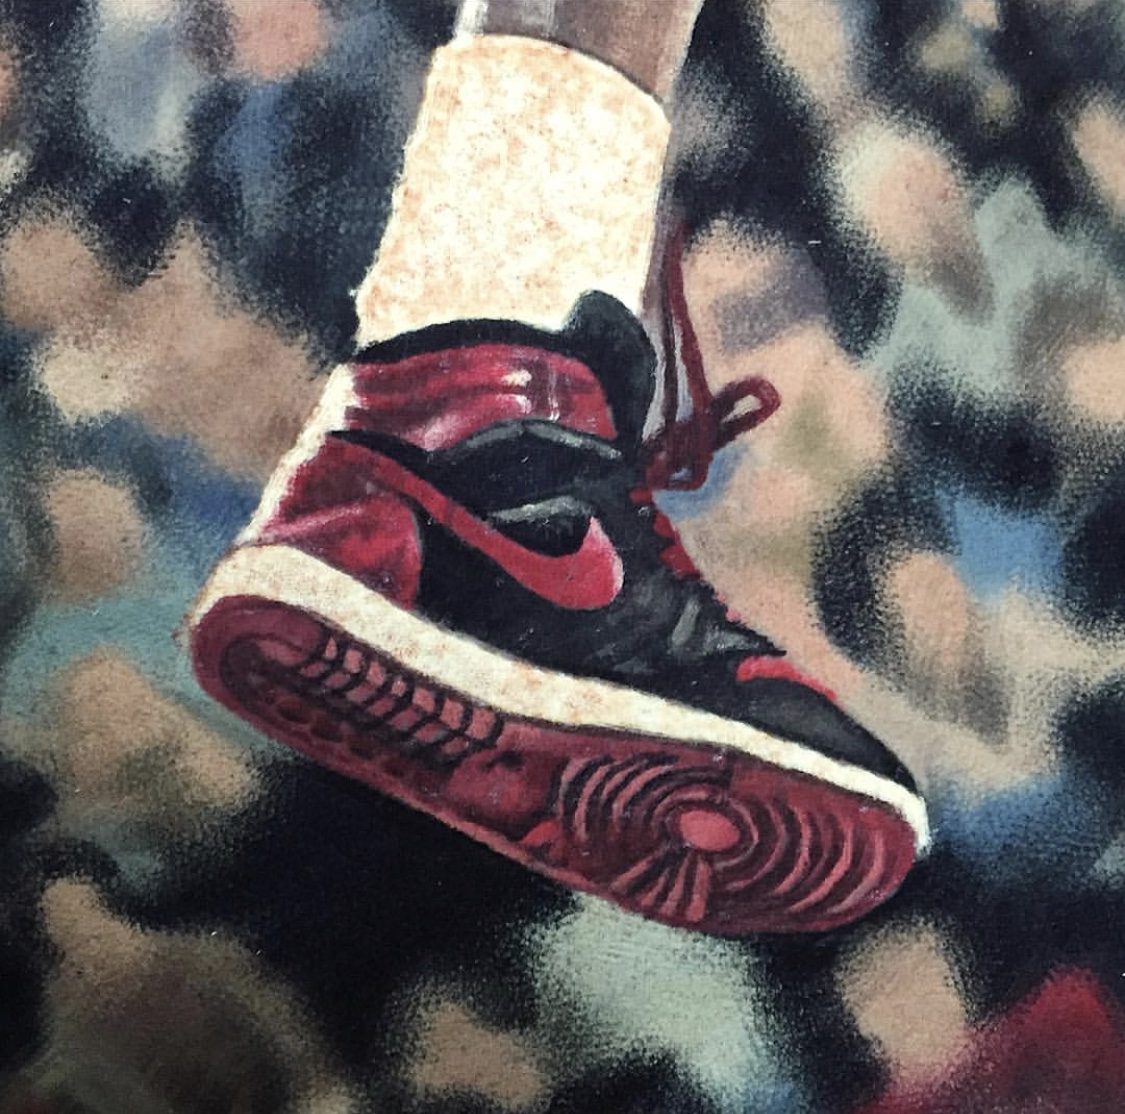 In this closeup you can see the smooth consistency of the softly focused background, where care was taken to avoid making sharp edges, and how strongly that sets out the sharply focused shoe in the foreground